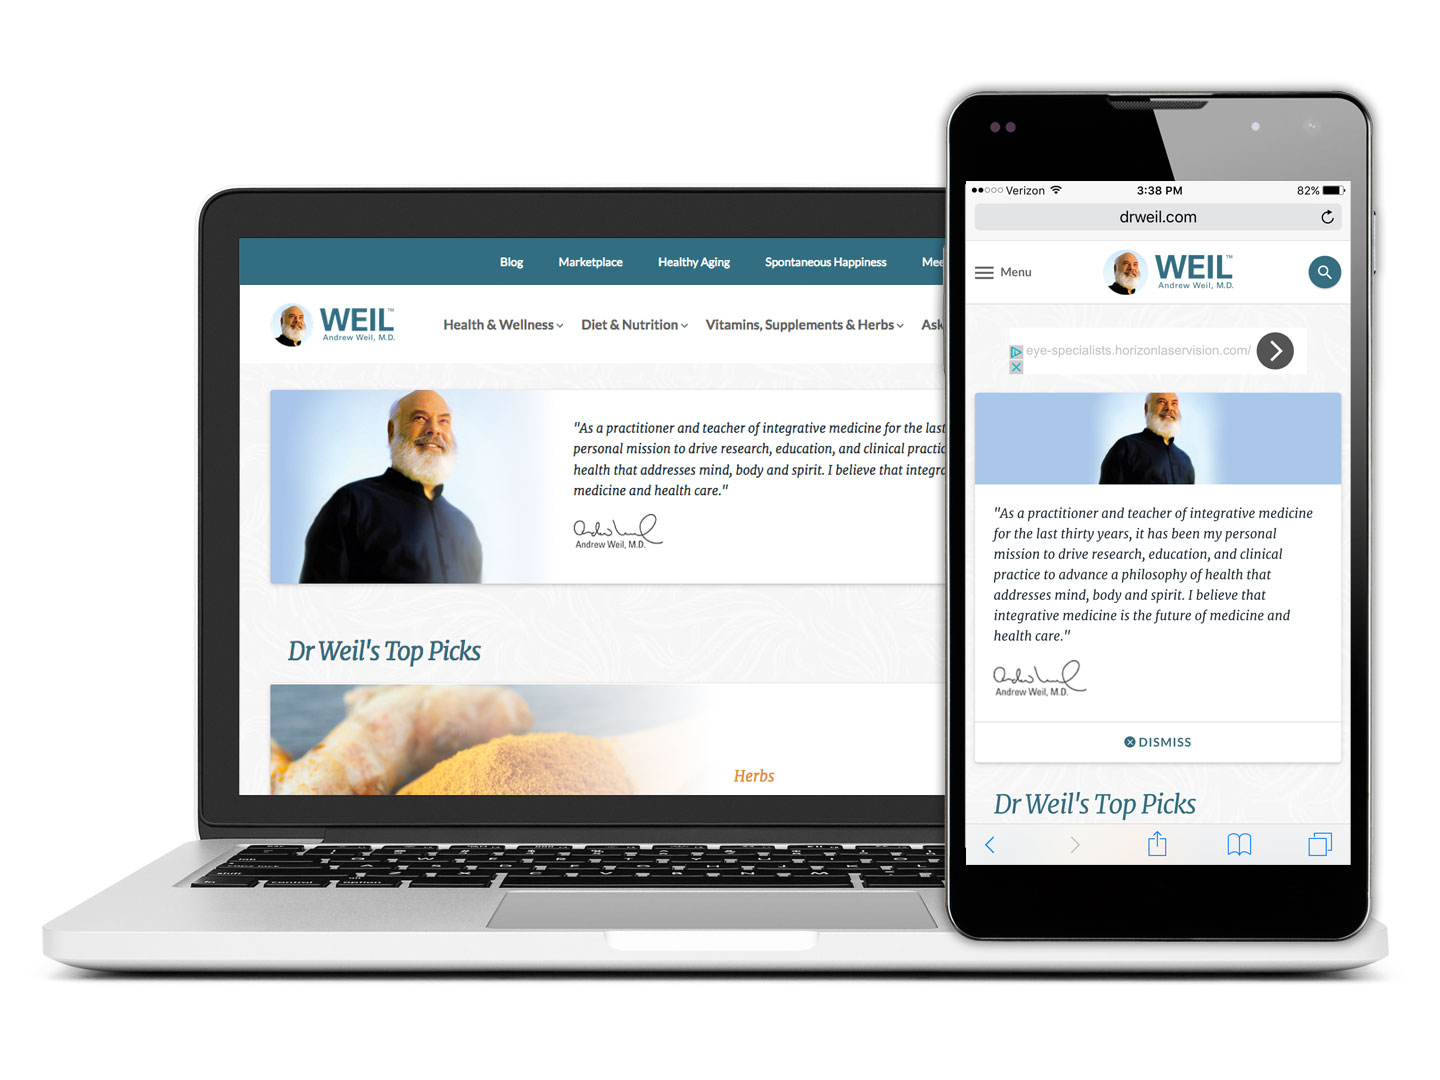 Welcome To The New DrWeil.com! - DrWeil.com